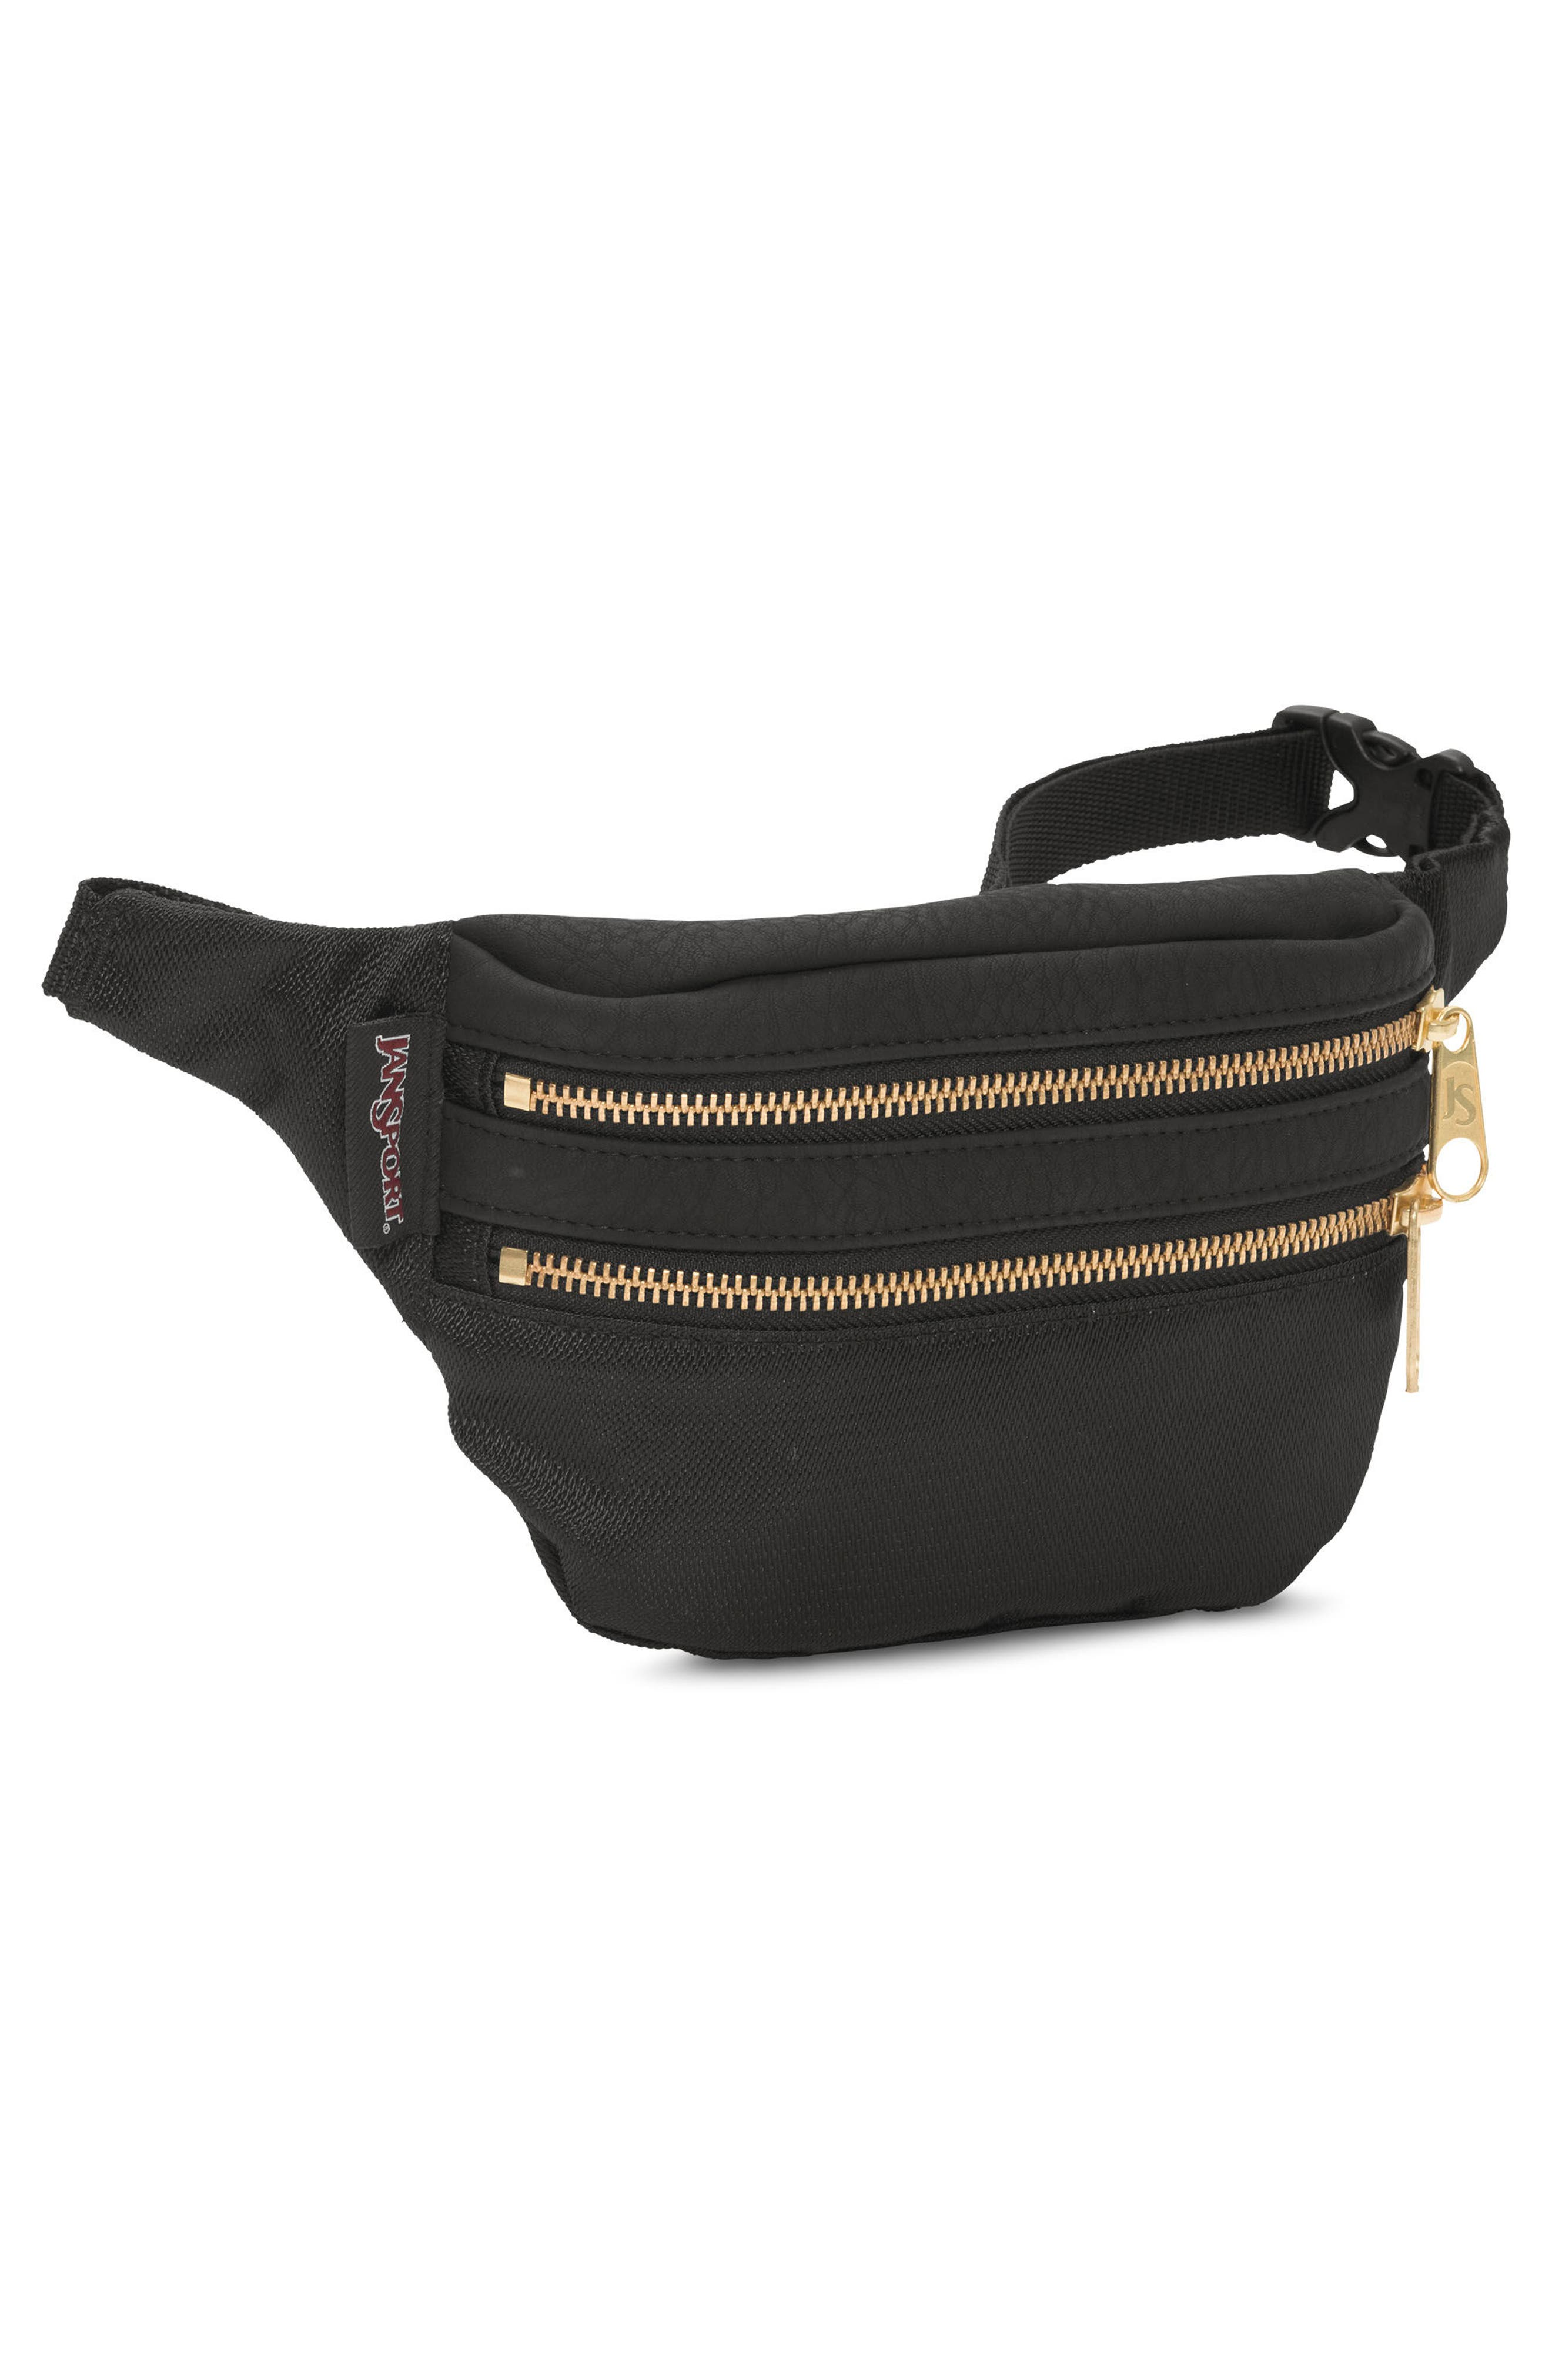 Hippyland Fanny Pack,                             Alternate thumbnail 5, color,                             001